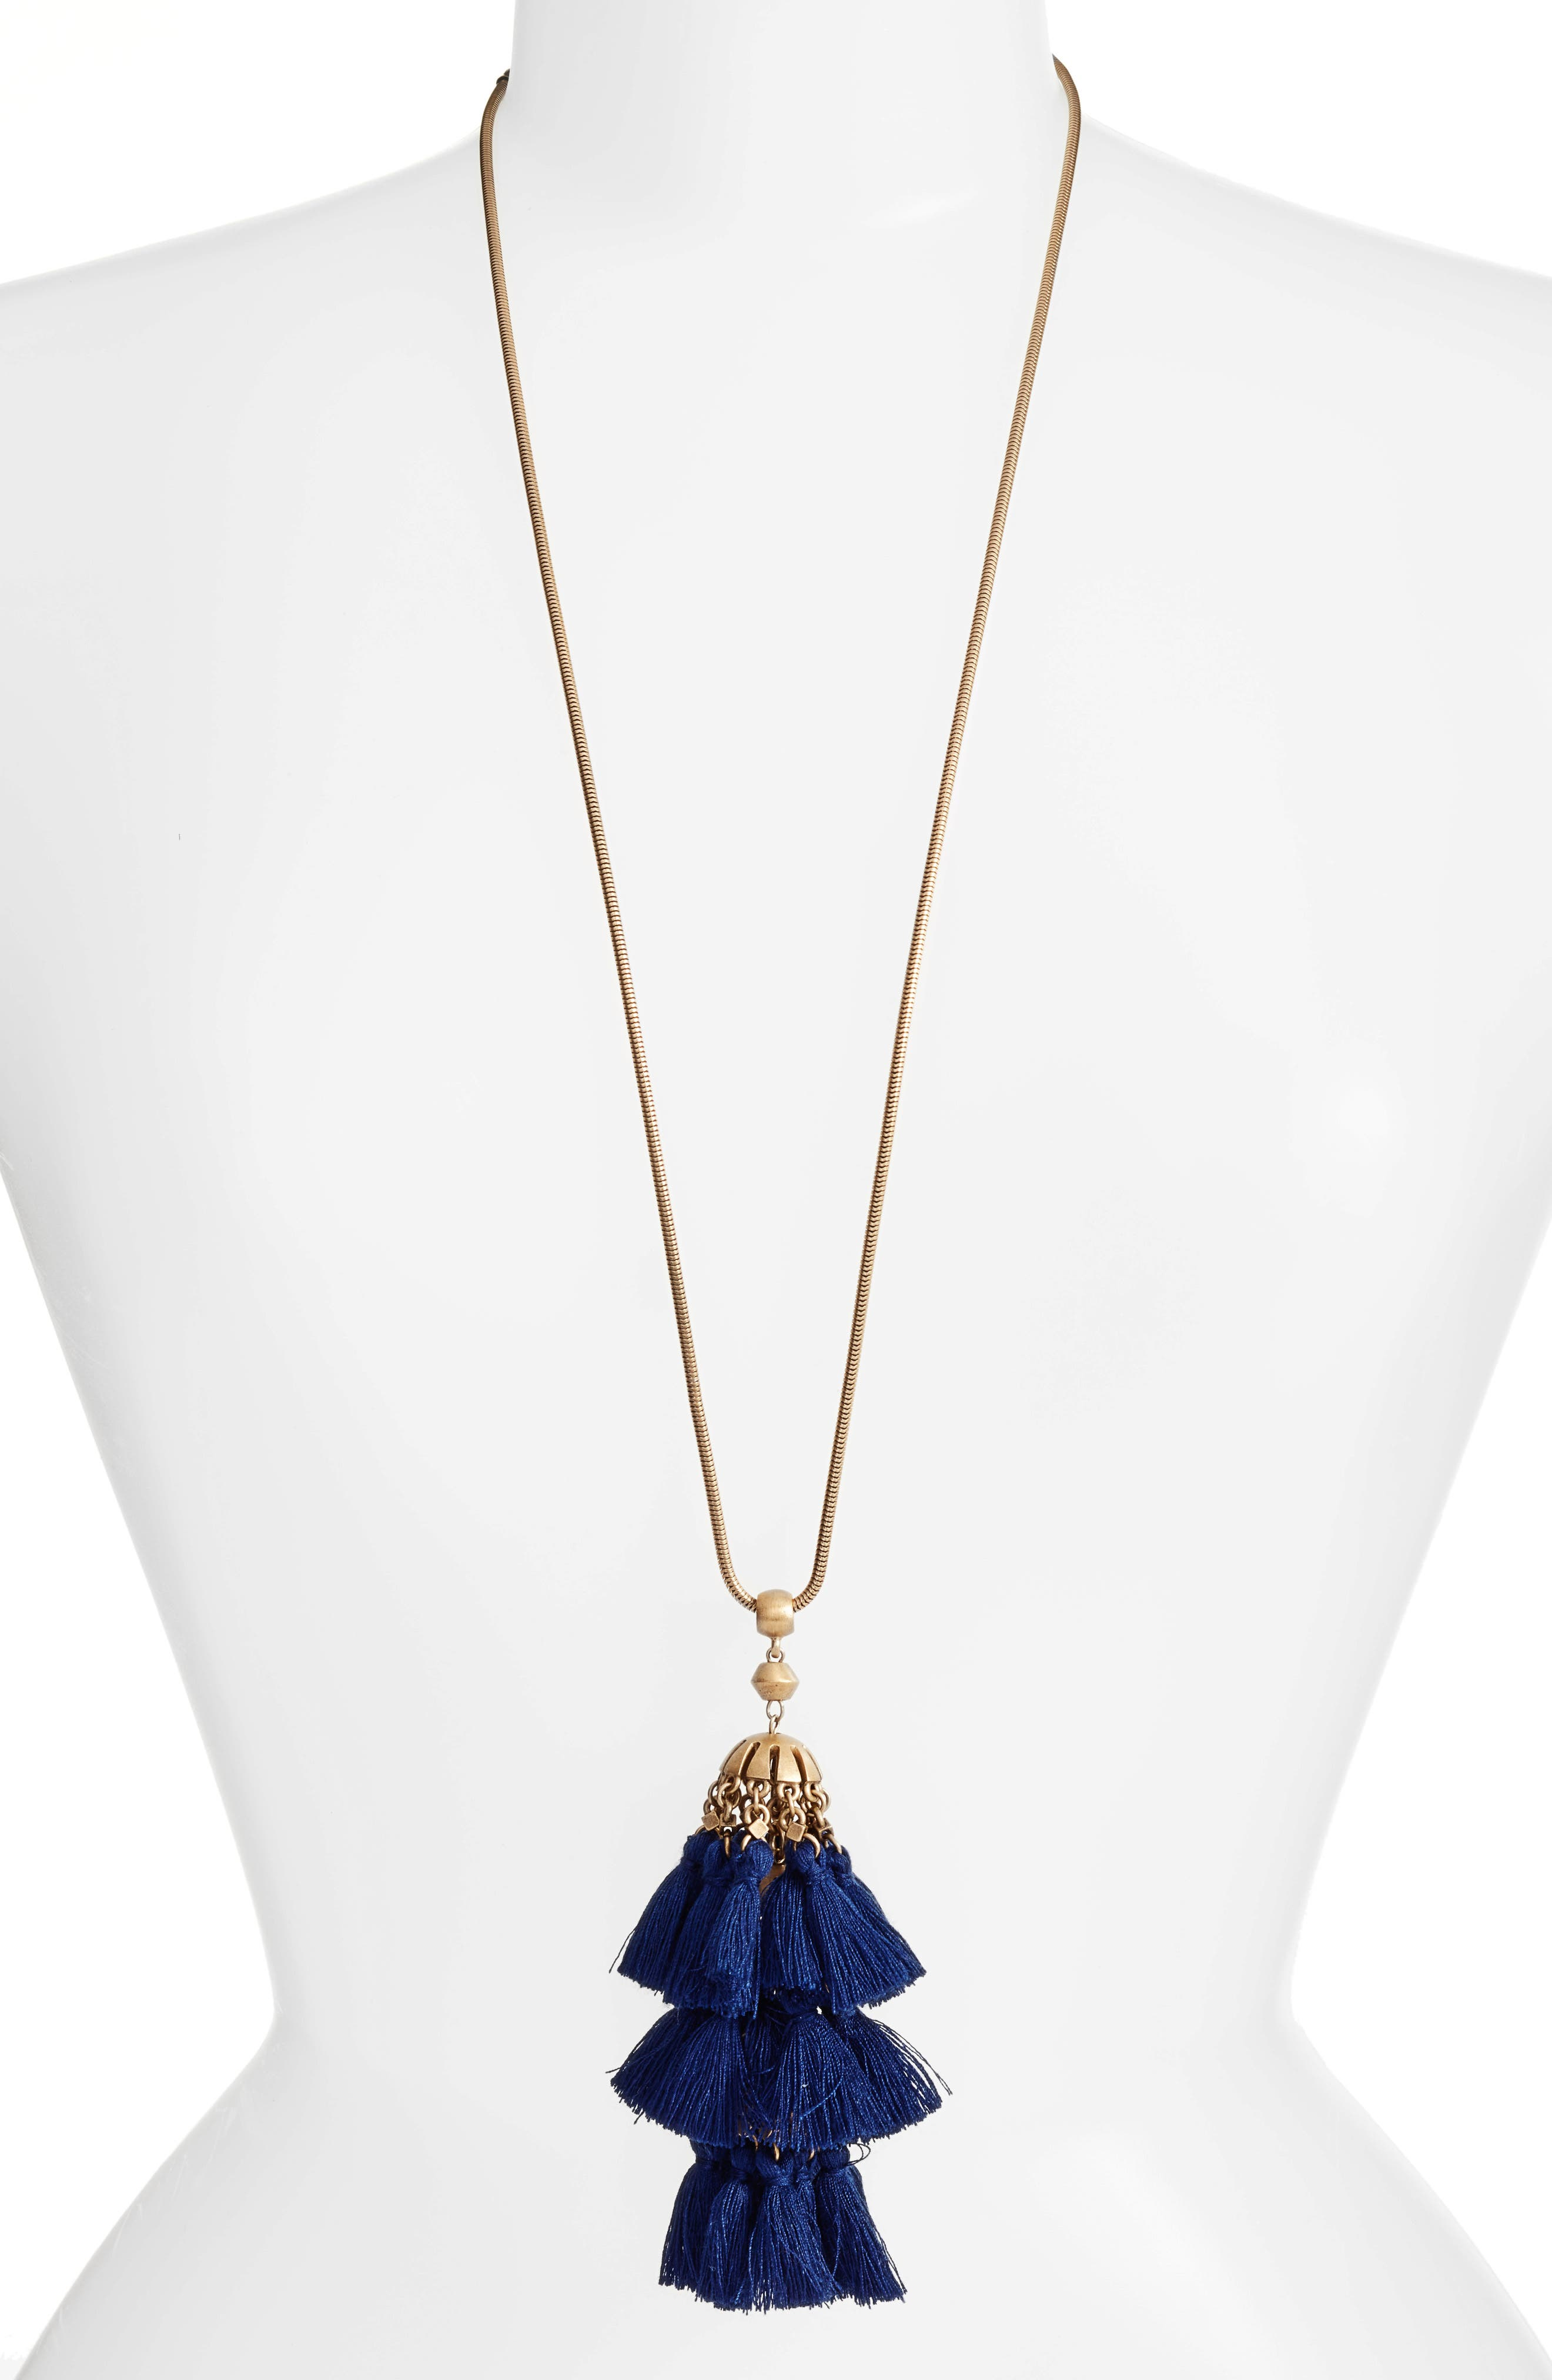 Loren Hope Audrey Tassel Pendant Necklace